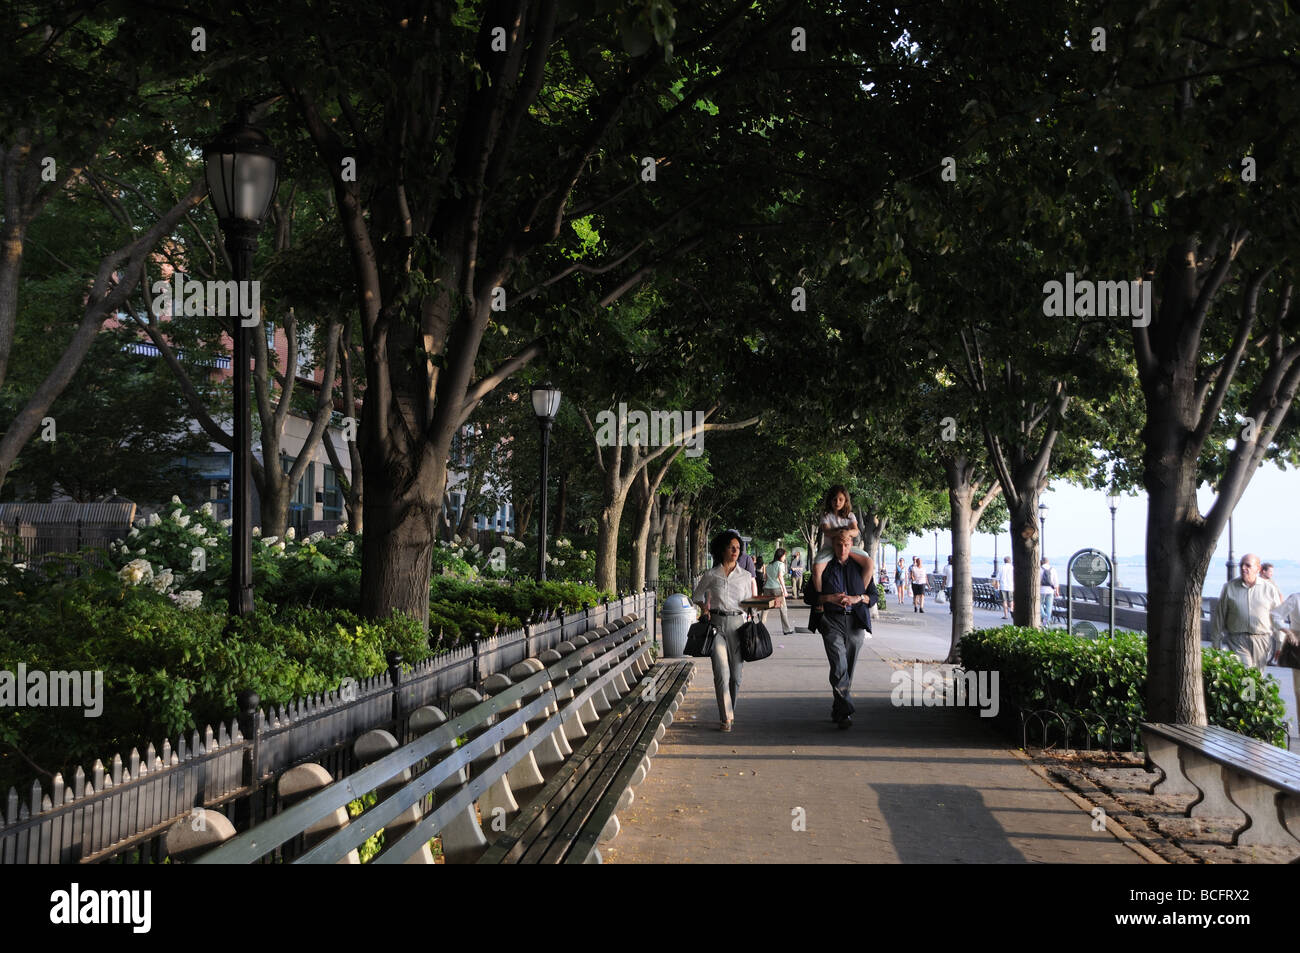 The esplanade in Battery Park City is shaded with linden trees that give off a heady fragrance when they flower - Stock Image